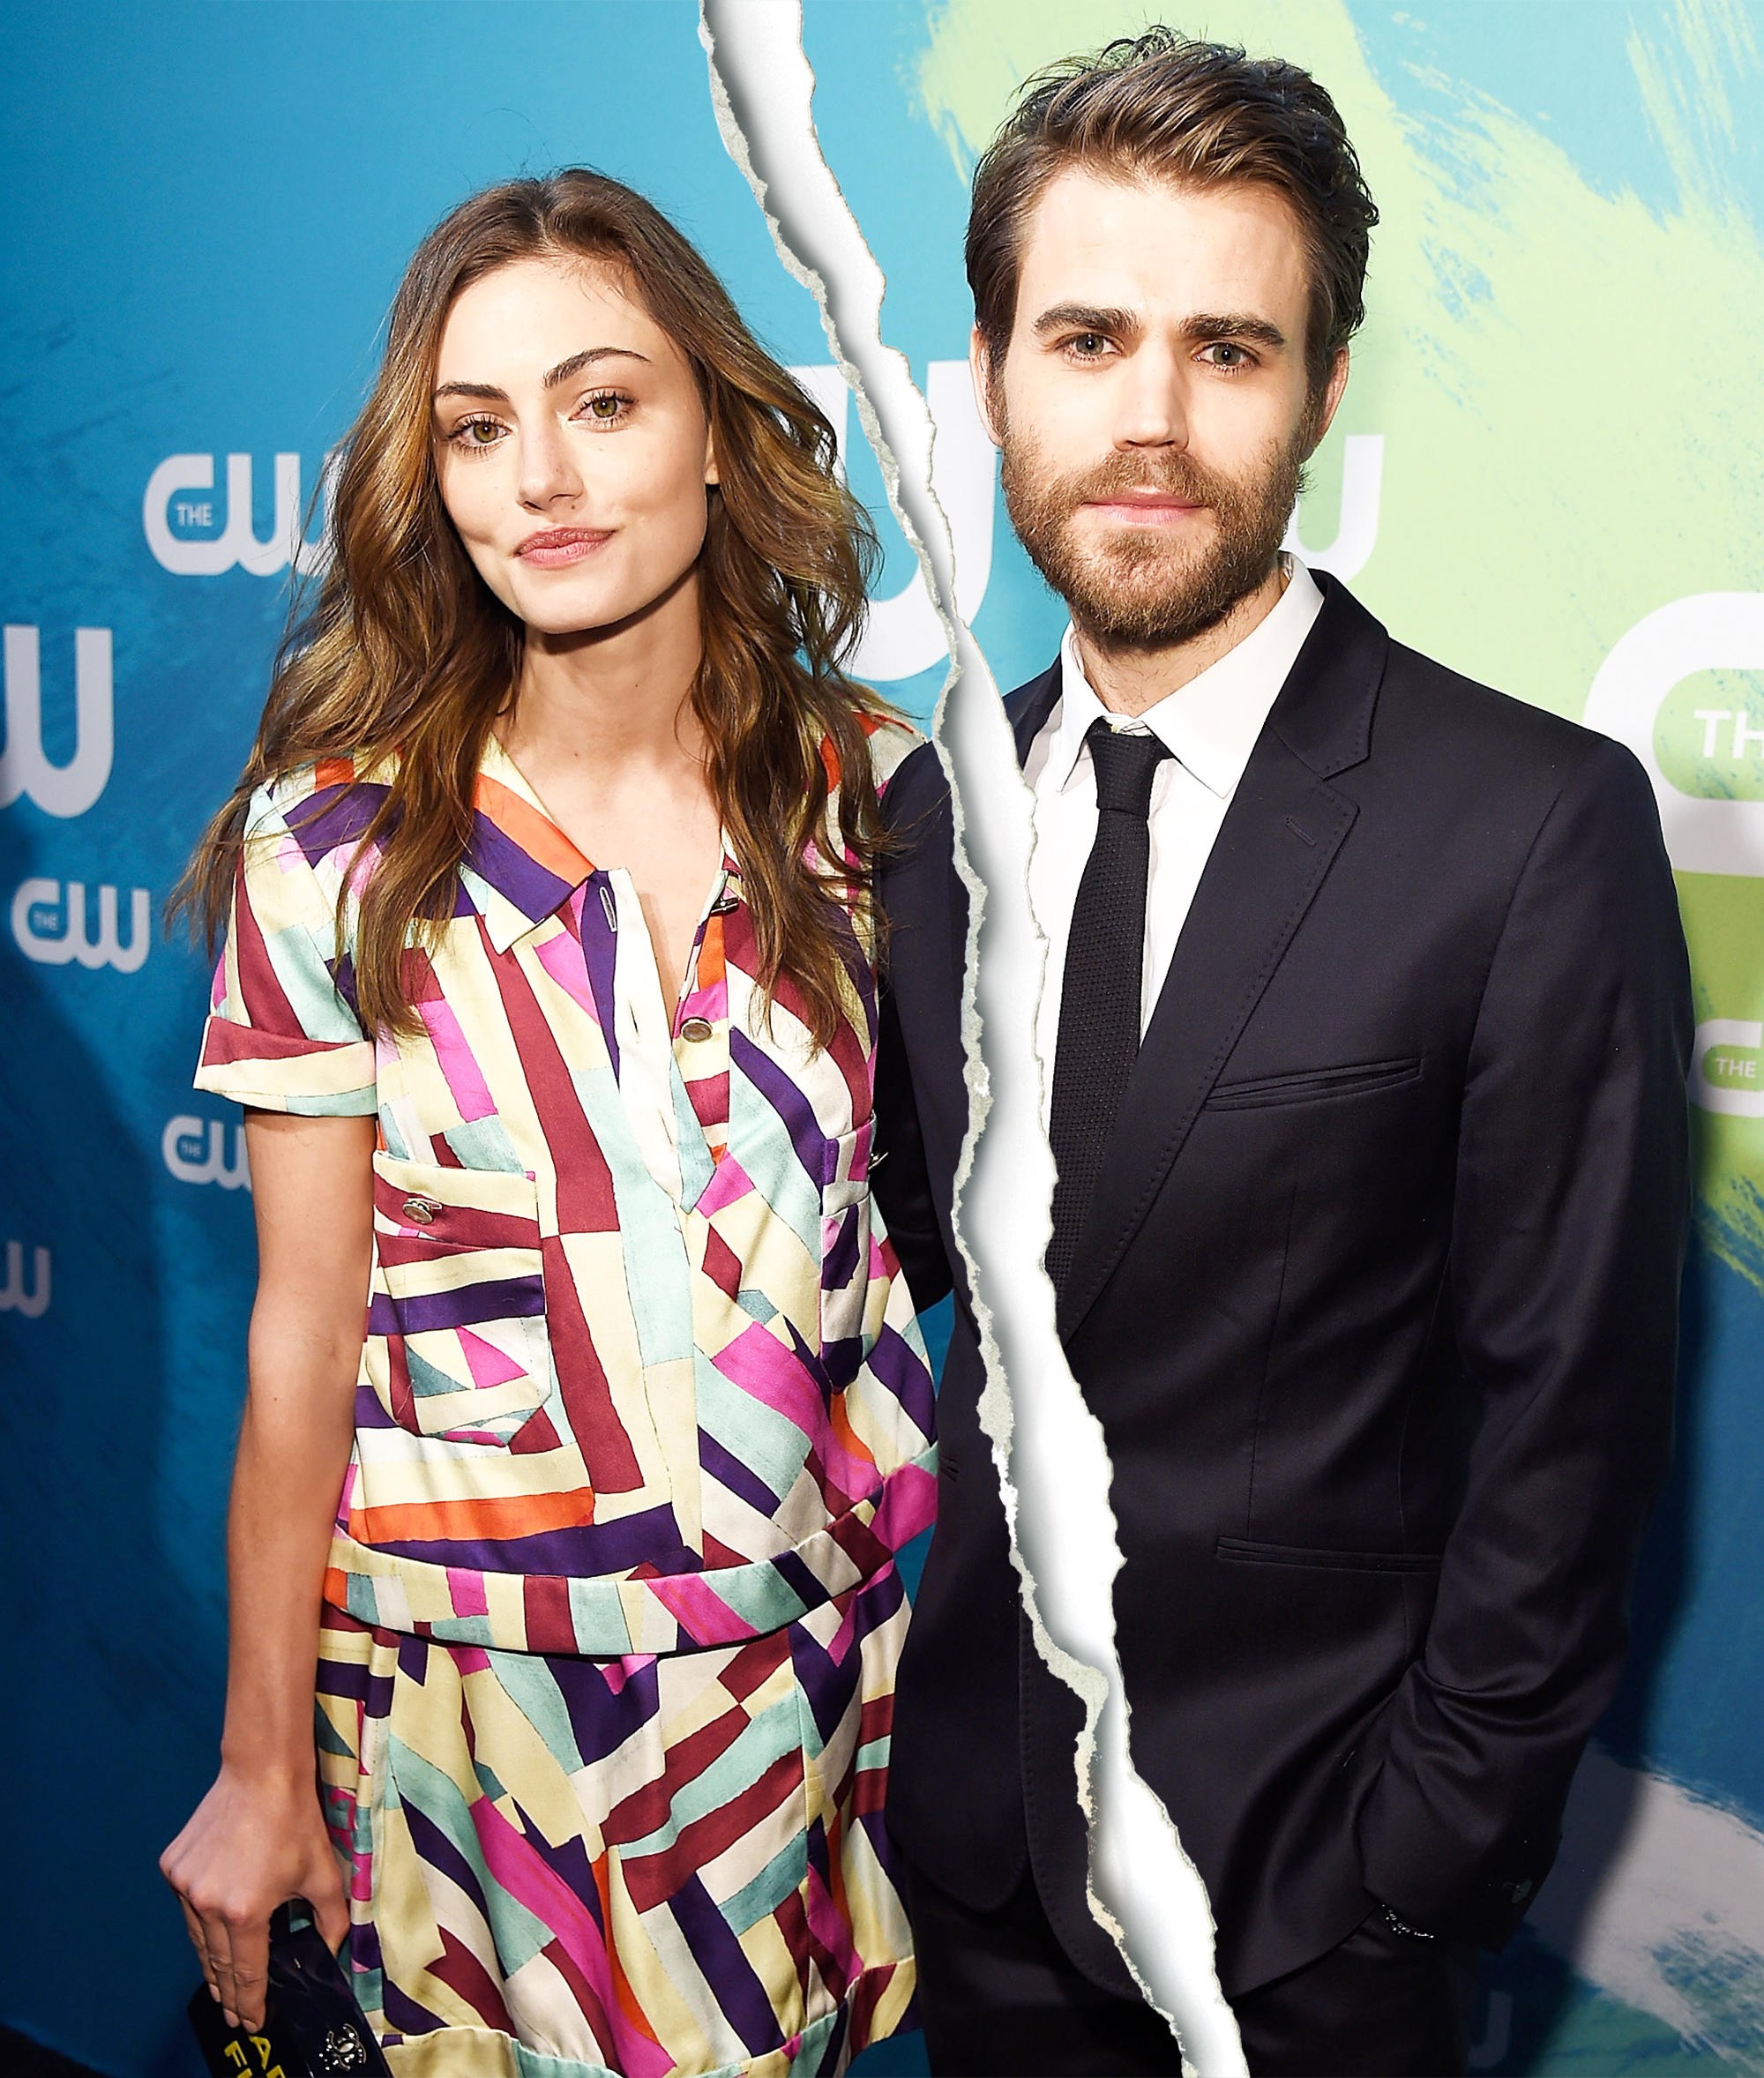 Paul Wesley And Phoebe Tonkin Split After Nearly 4 Years Together